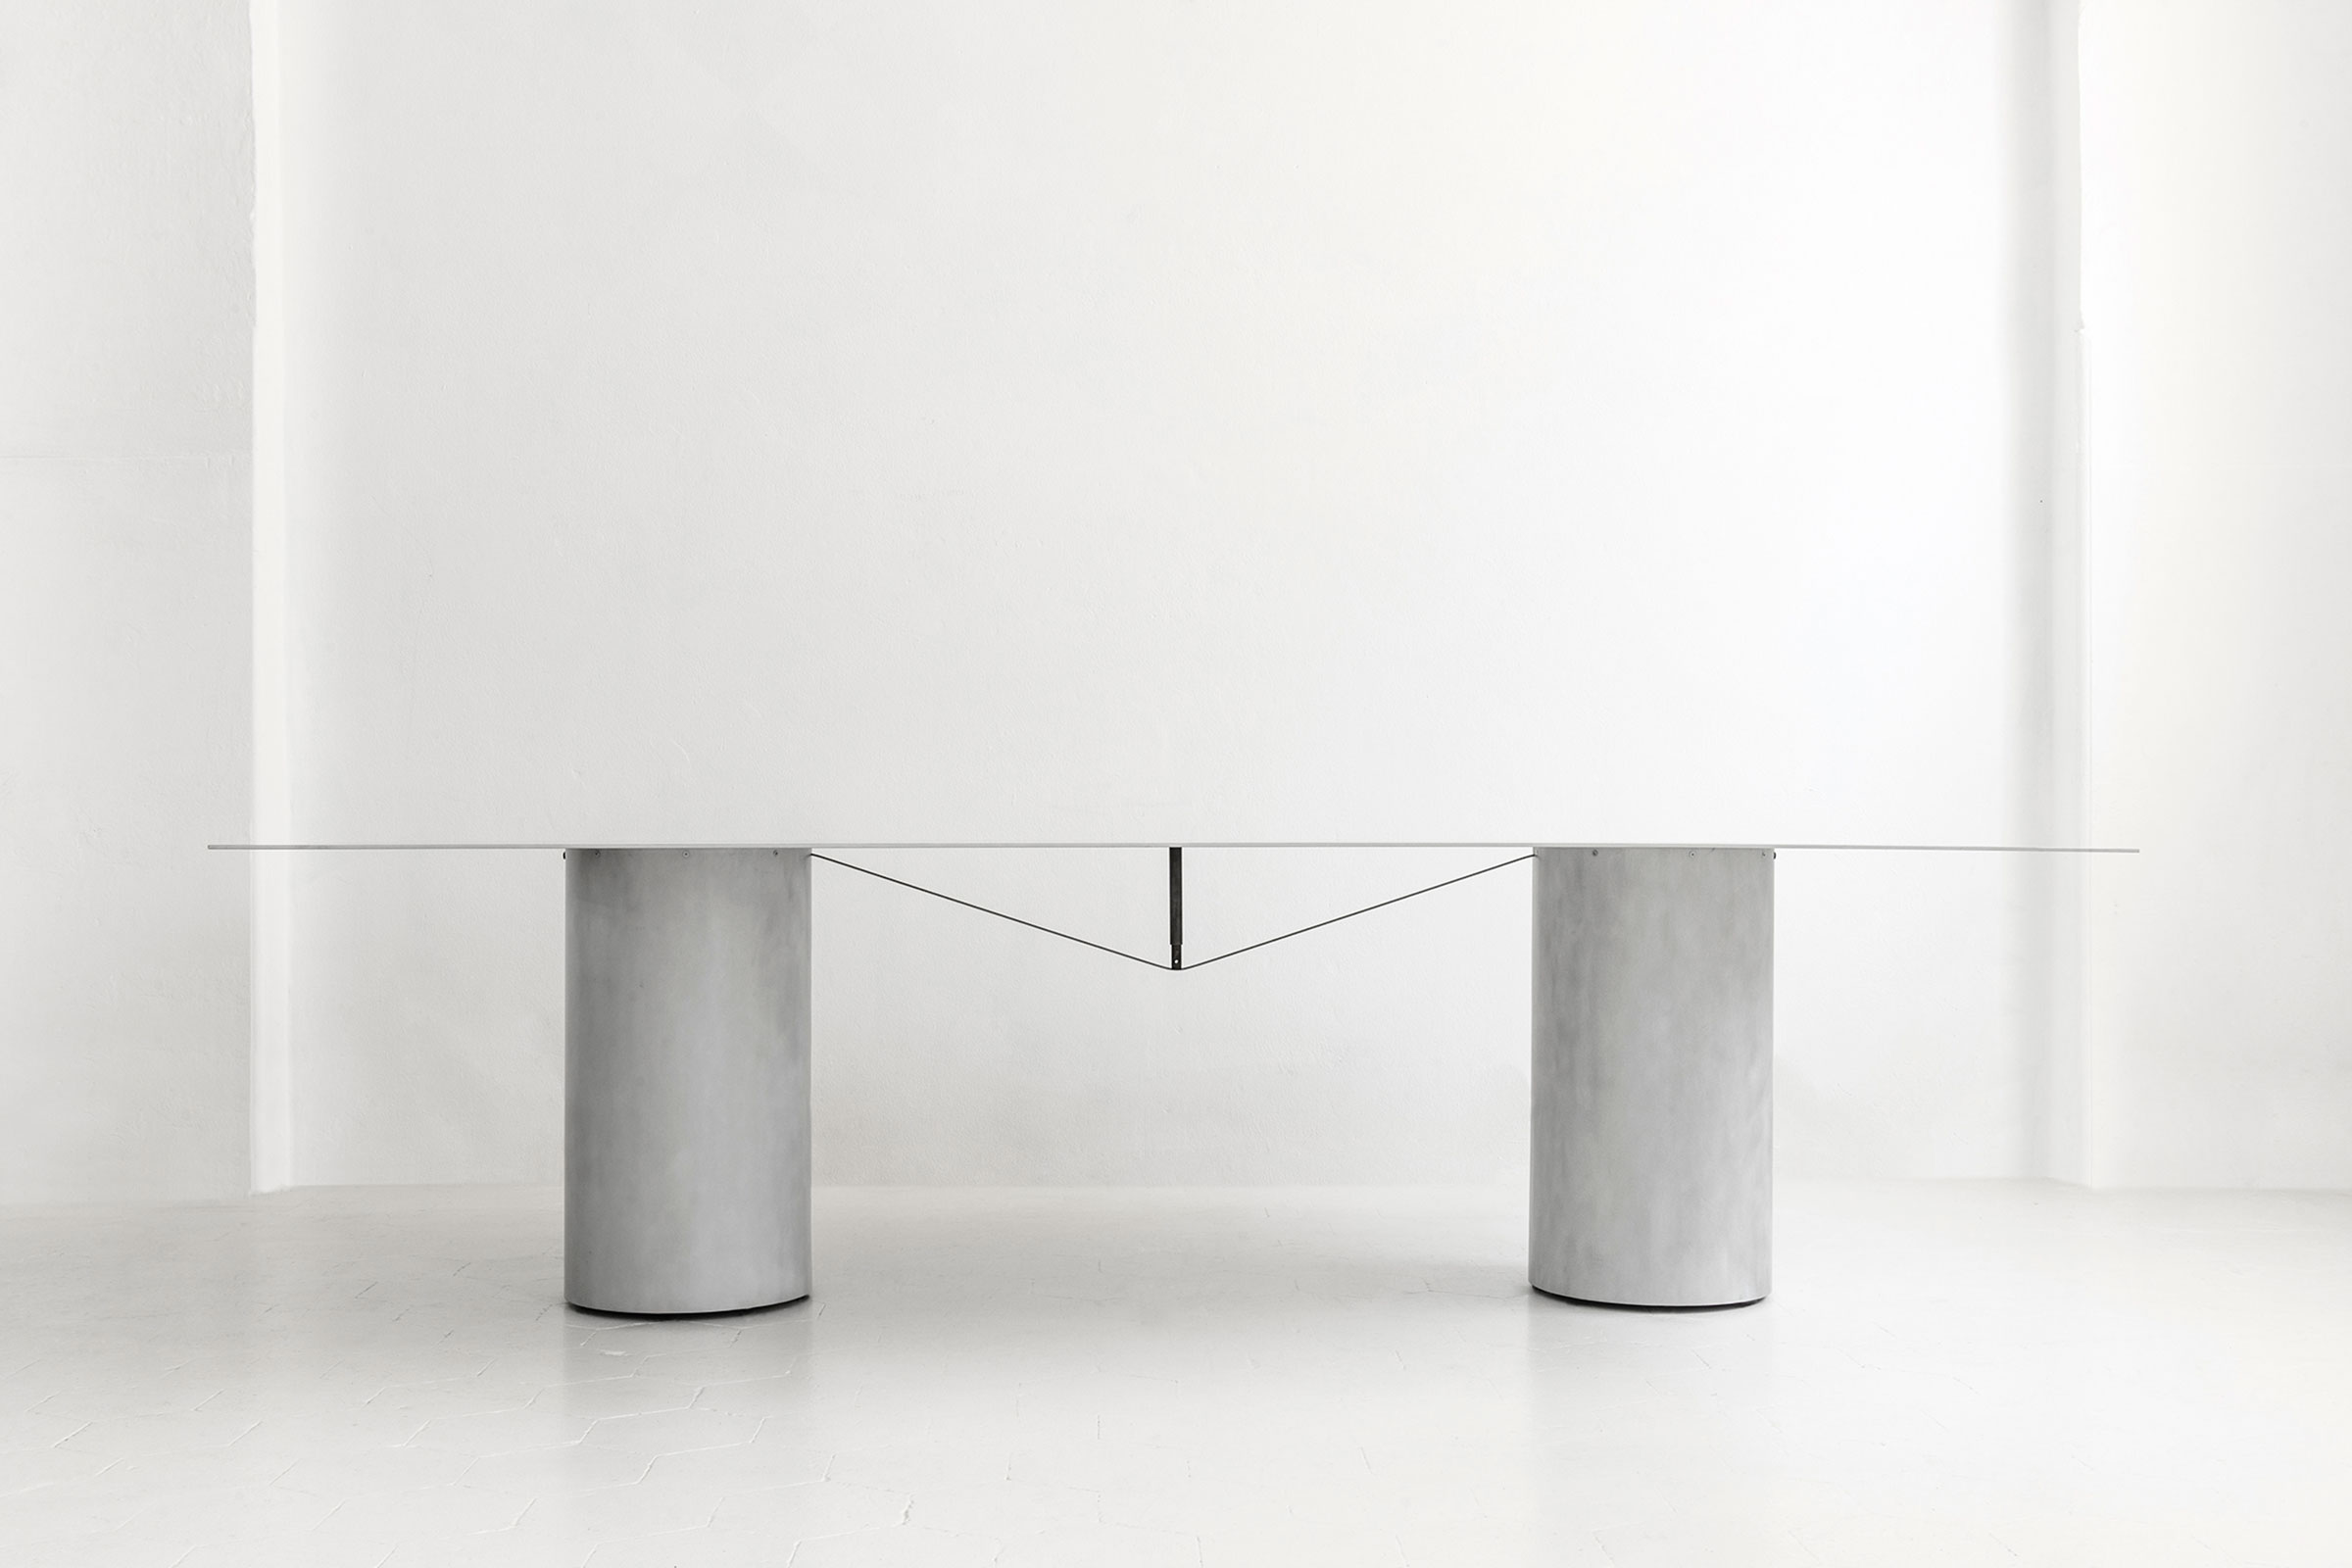 Equilibrium rectangular table by Guglielmo Poletti. Image courtesy of Galleria Rossana Orlandi